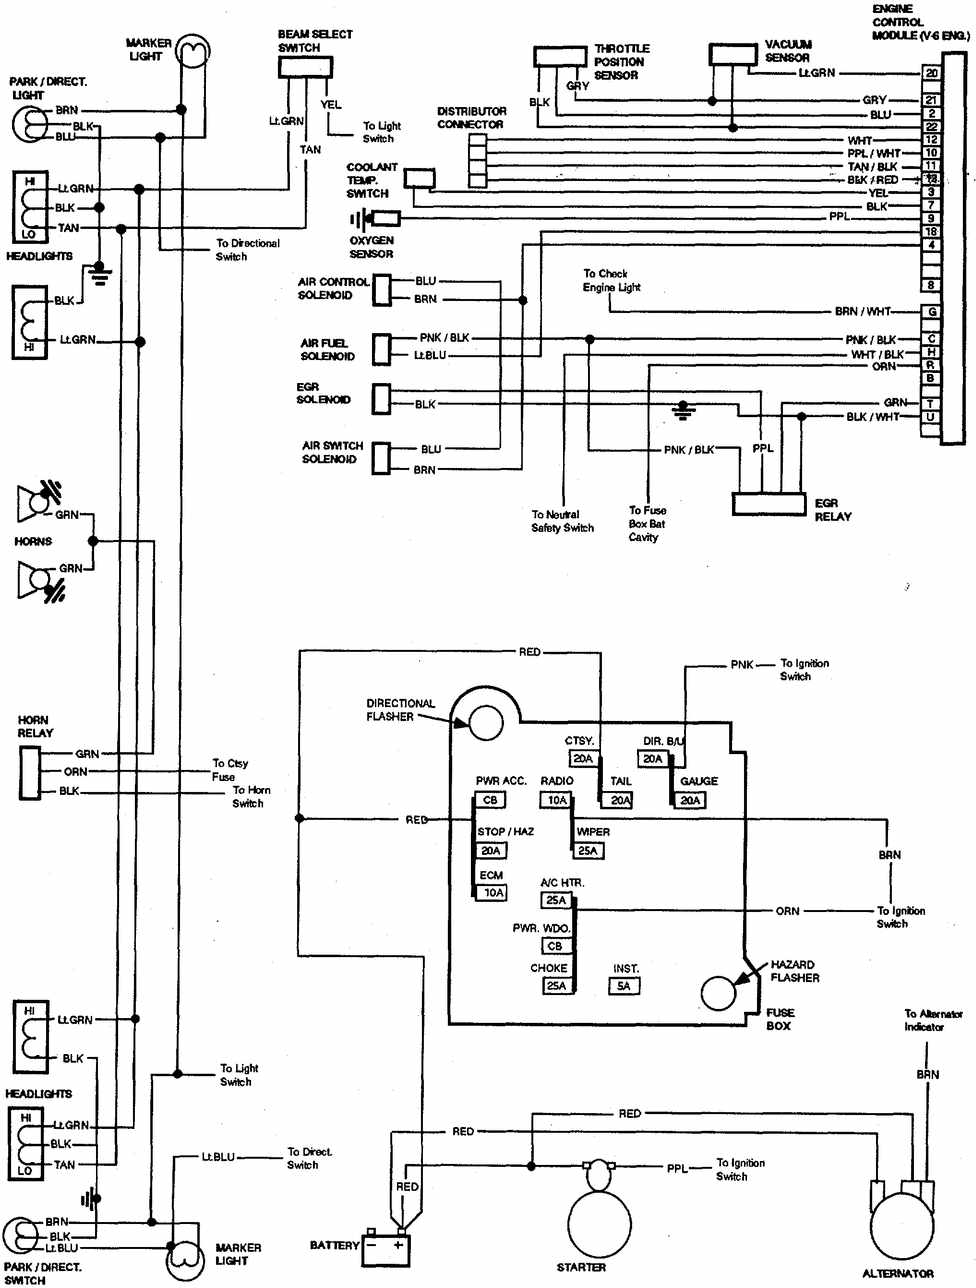 1991 Buick Century Engine Diagram Great Design Of Wiring Images Gallery